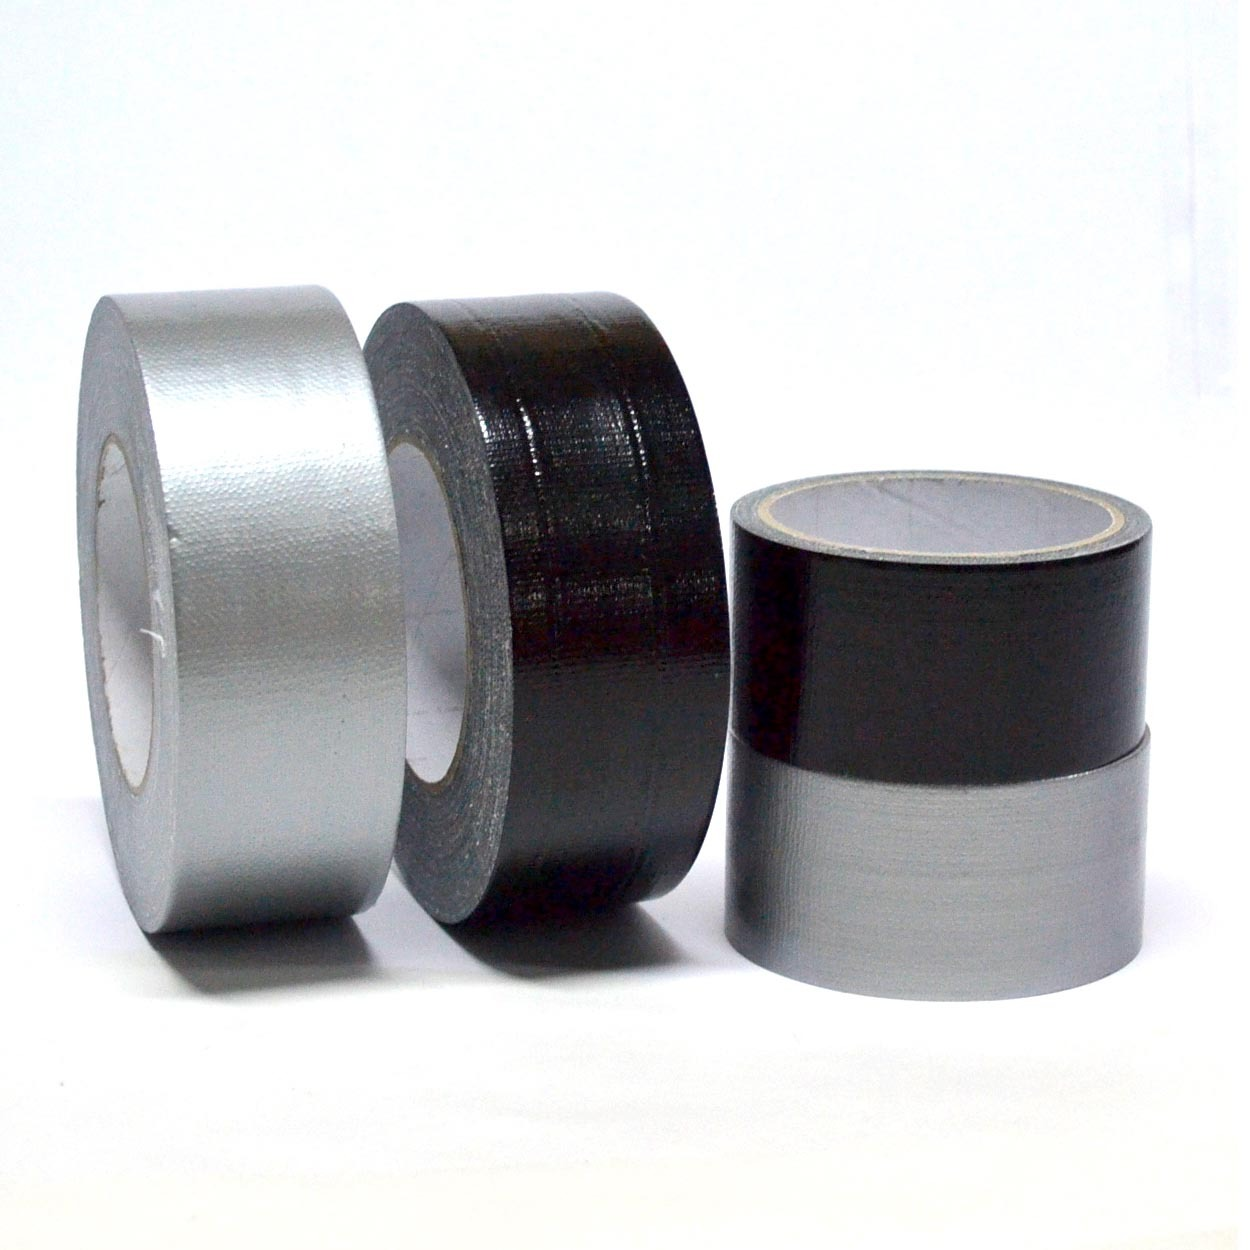 Bulk Duct Tape, Wholesale Duct Tape